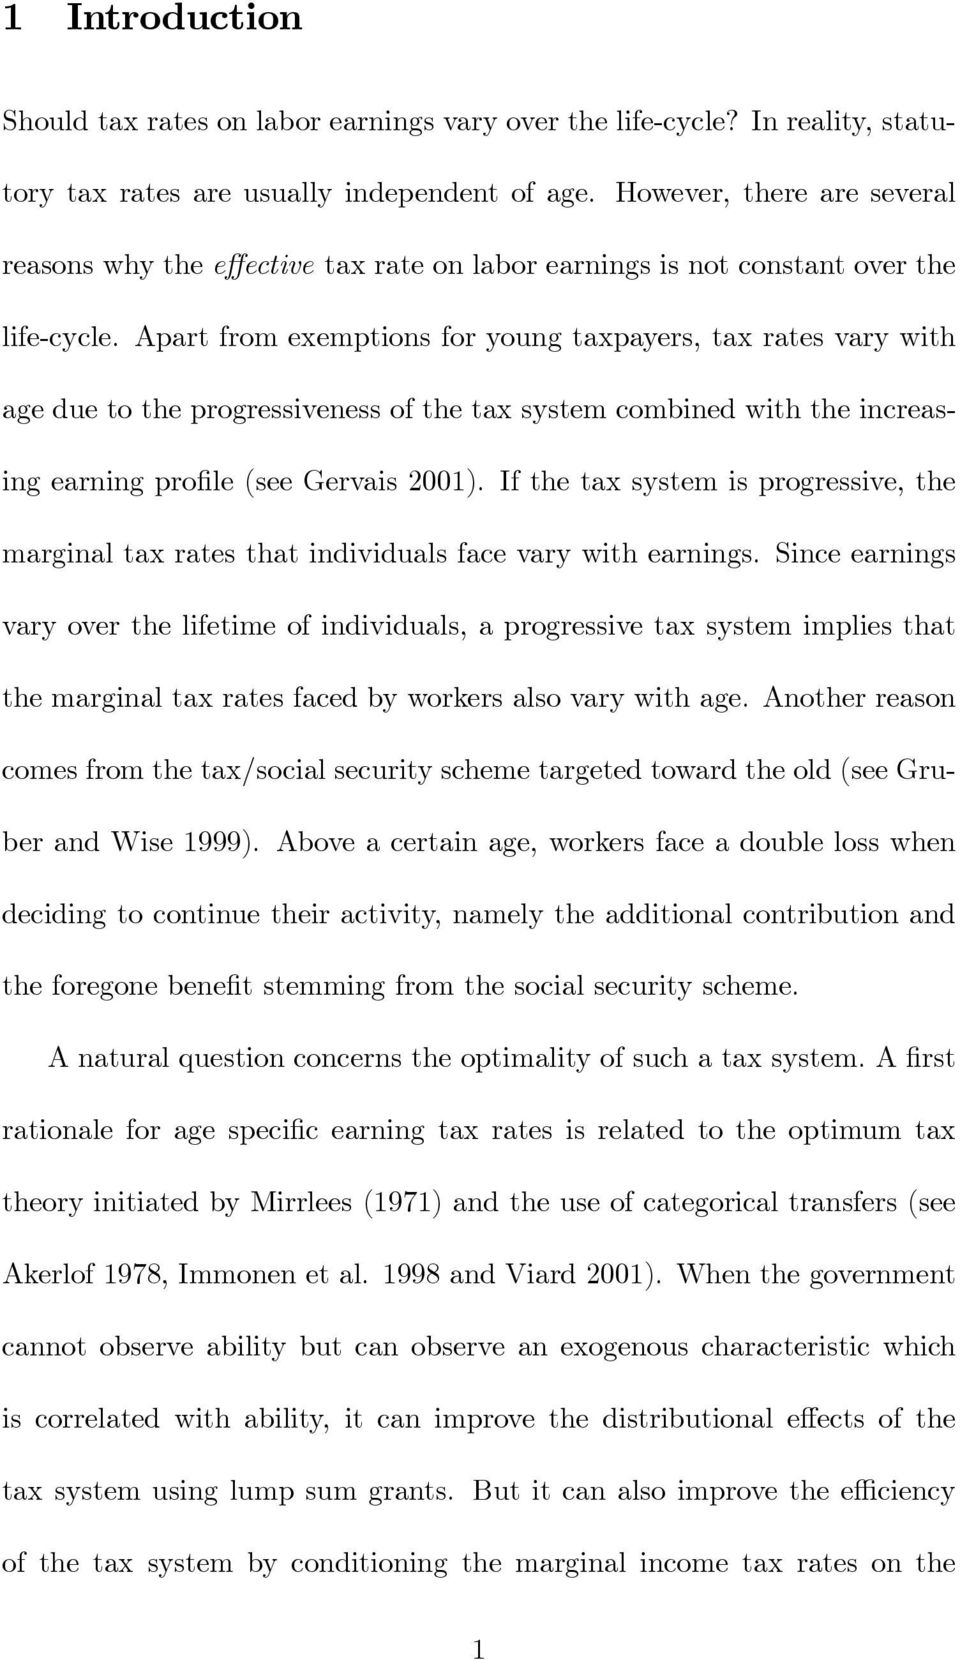 Apart from exemptions for young taxpayers, tax rates vary with age due to the progressiveness of the tax system combined with the increasing earning profile (see Gervais 2001).